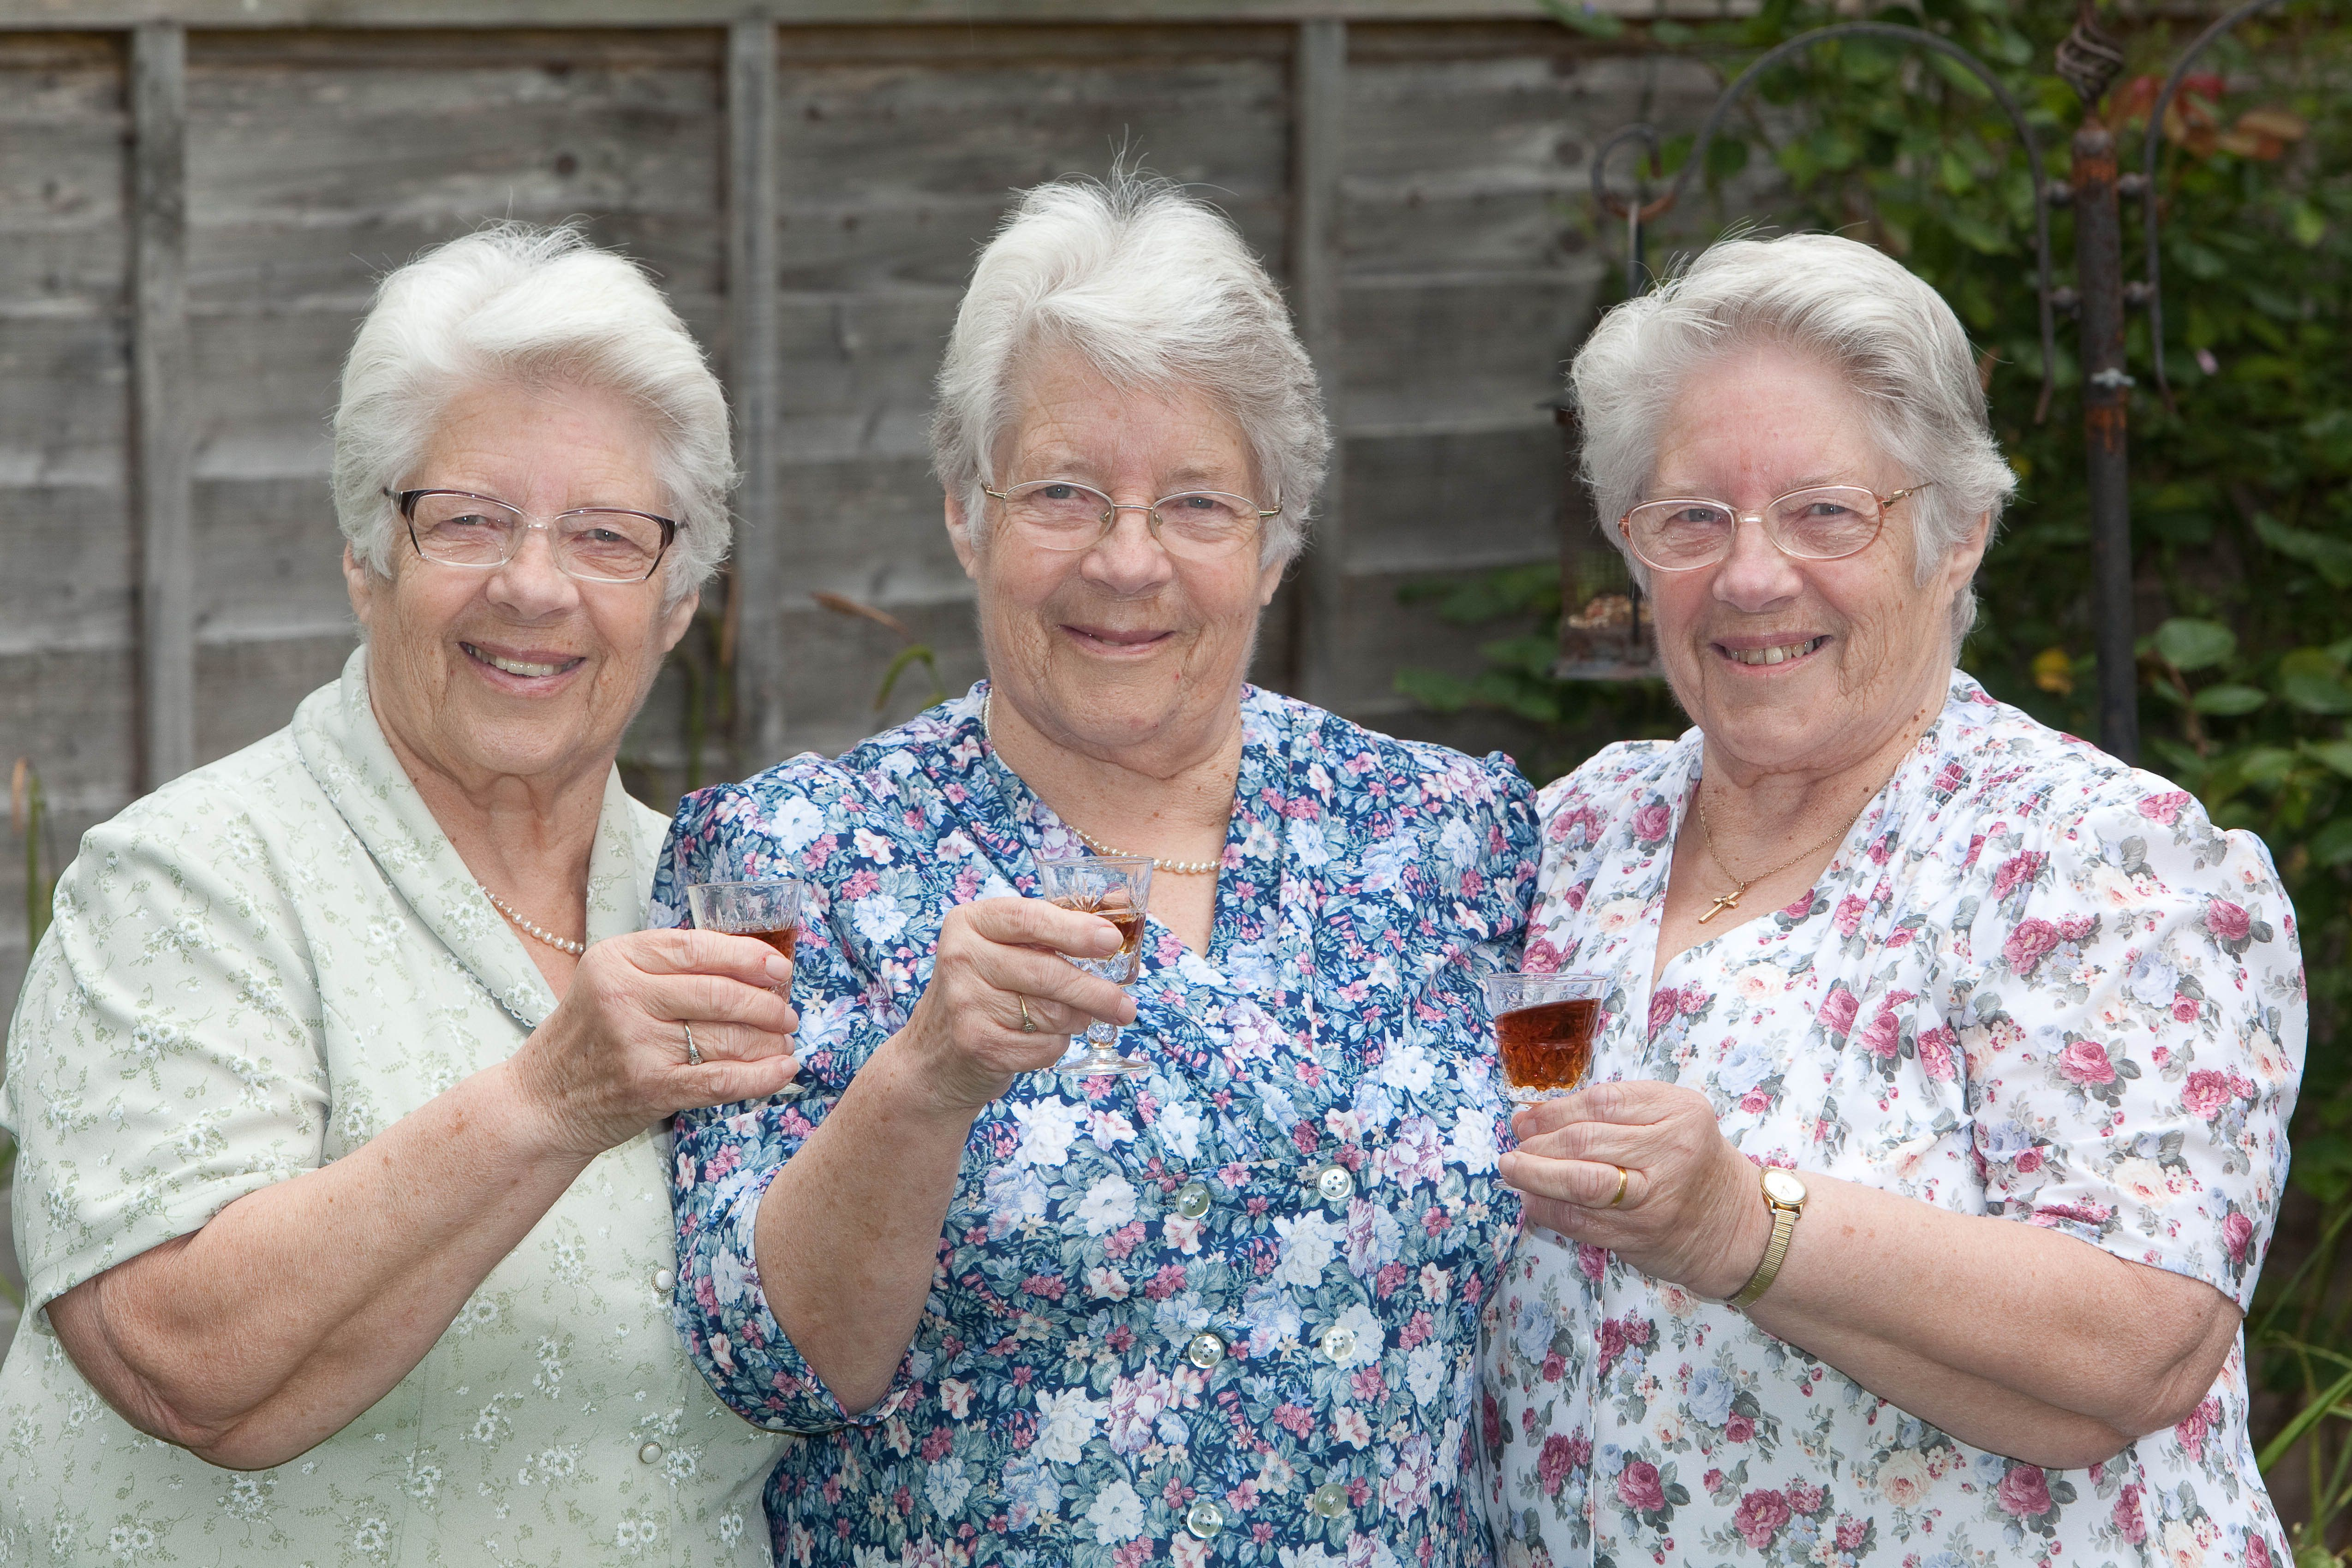 Britain's Oldest Triplets Celebrate 80th Birthday Together